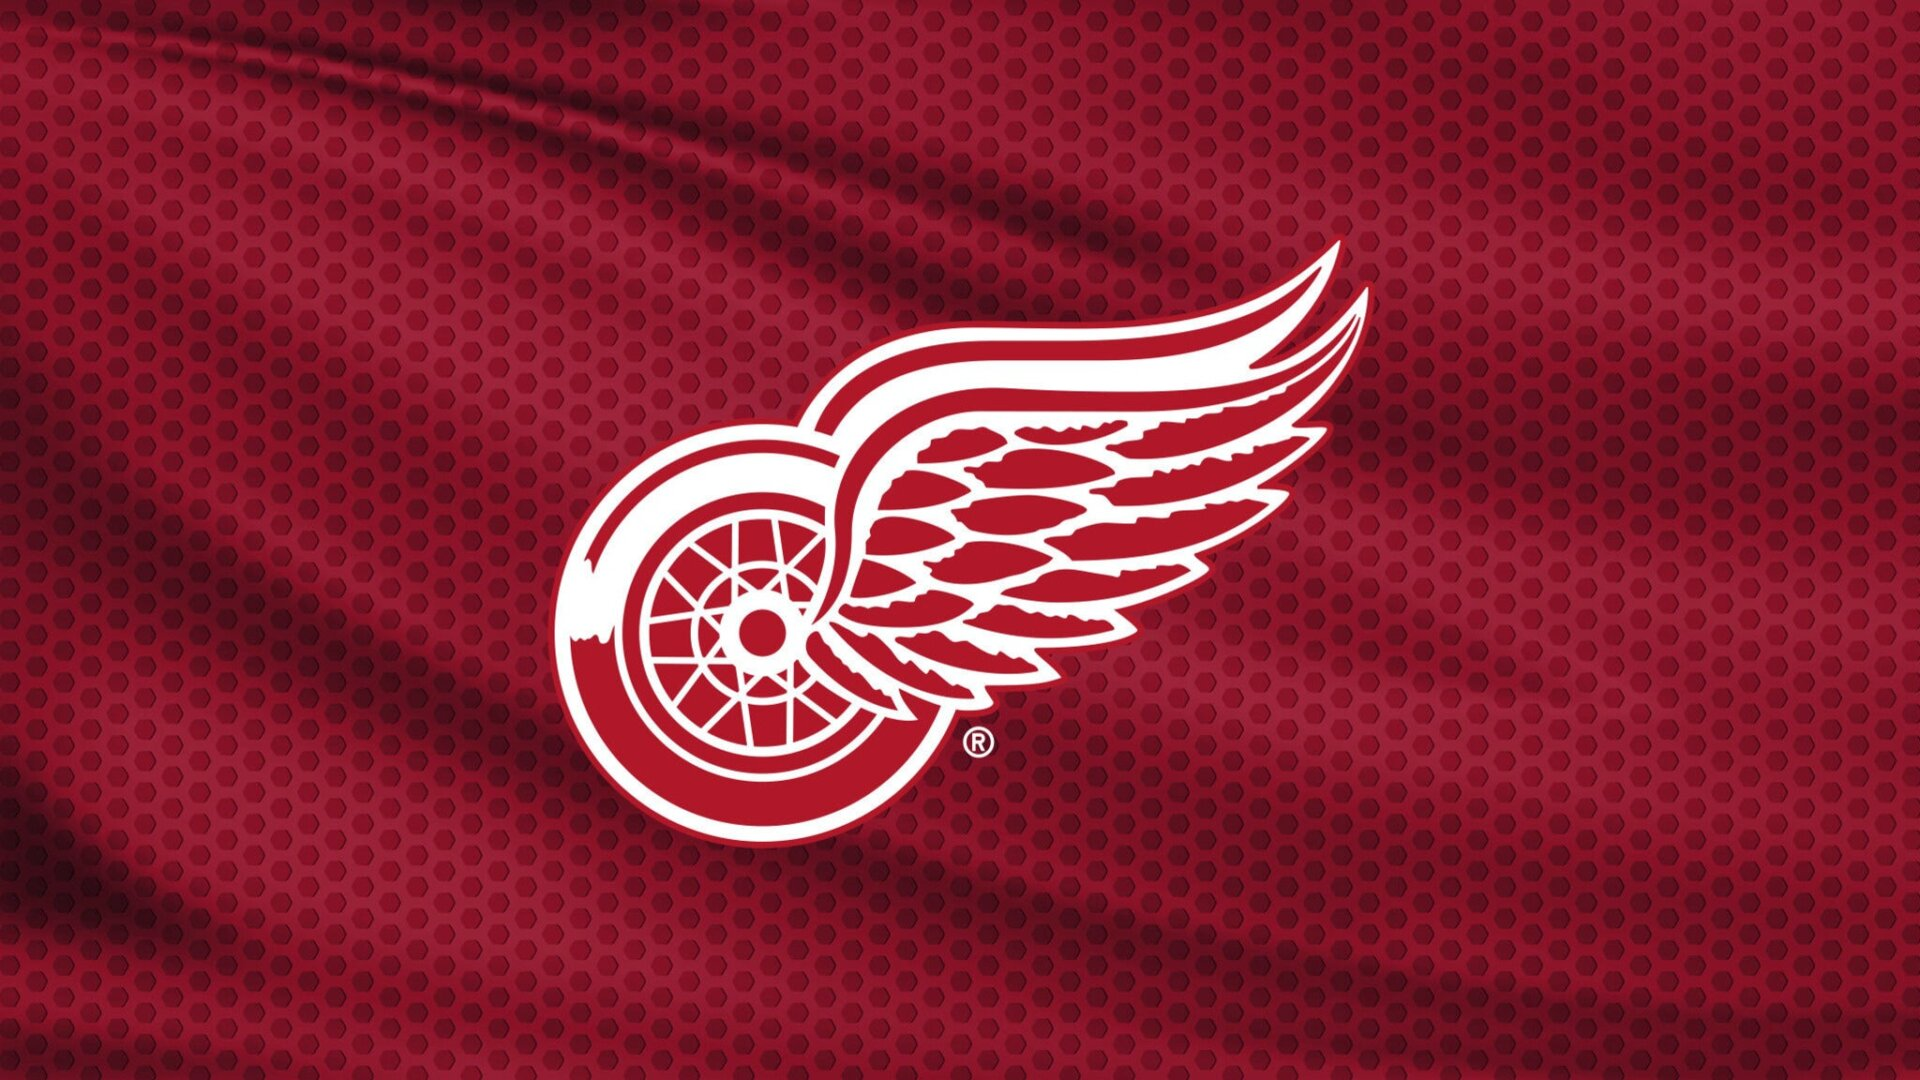 Red Wings jersey concept design blends old with new